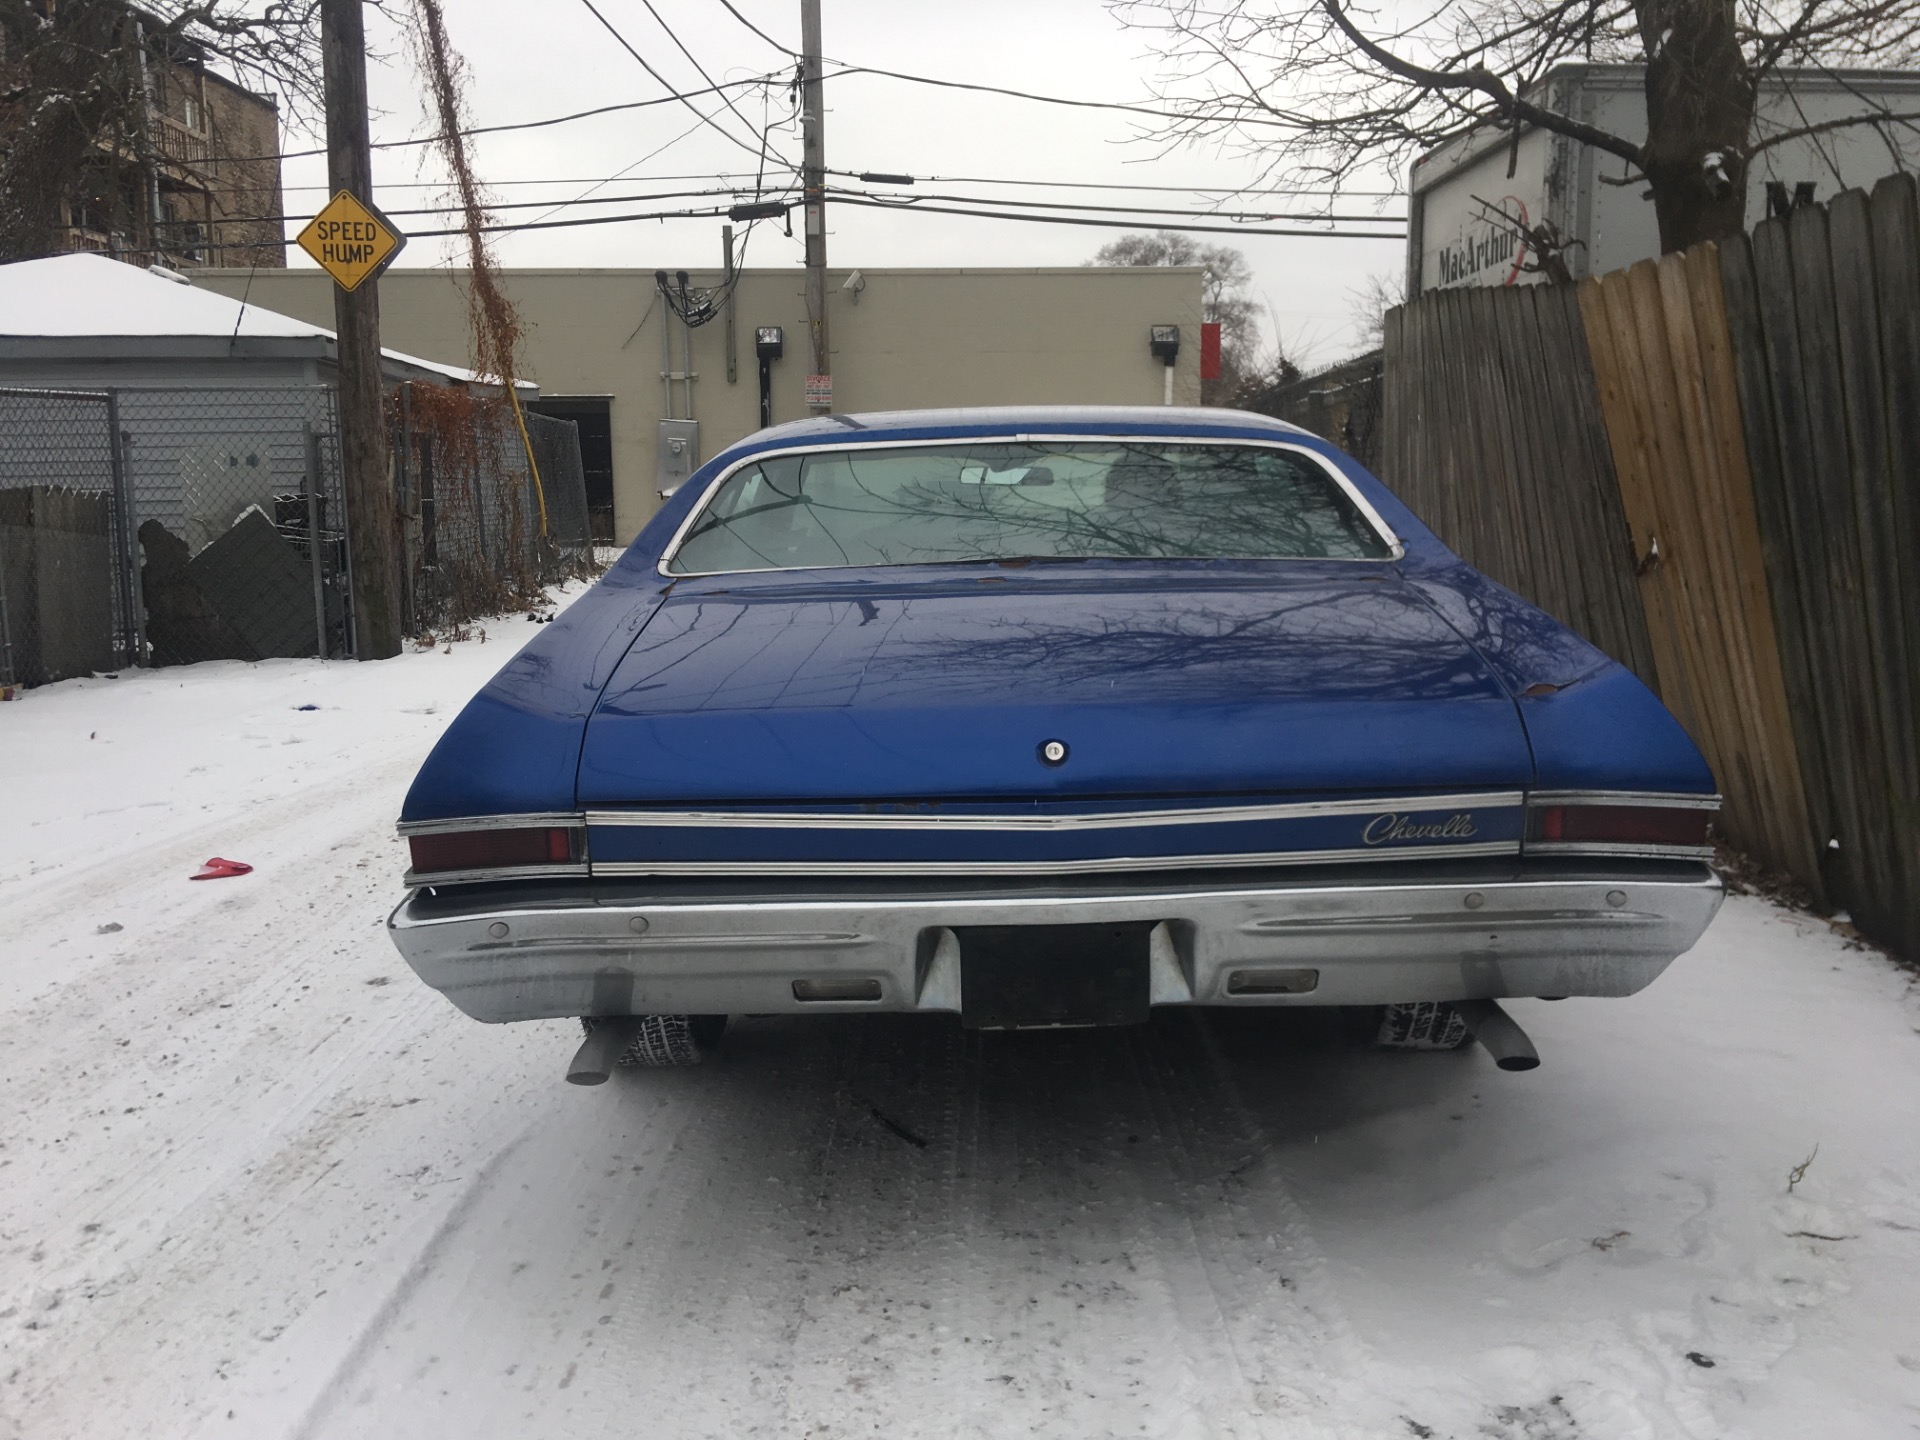 Used 1968 Chevrolet Chevelle -AFFORDABLE FUN-LOCAL CAR-DRIVER QUALITY-WONT LAST AT PRICE- | Mundelein, IL